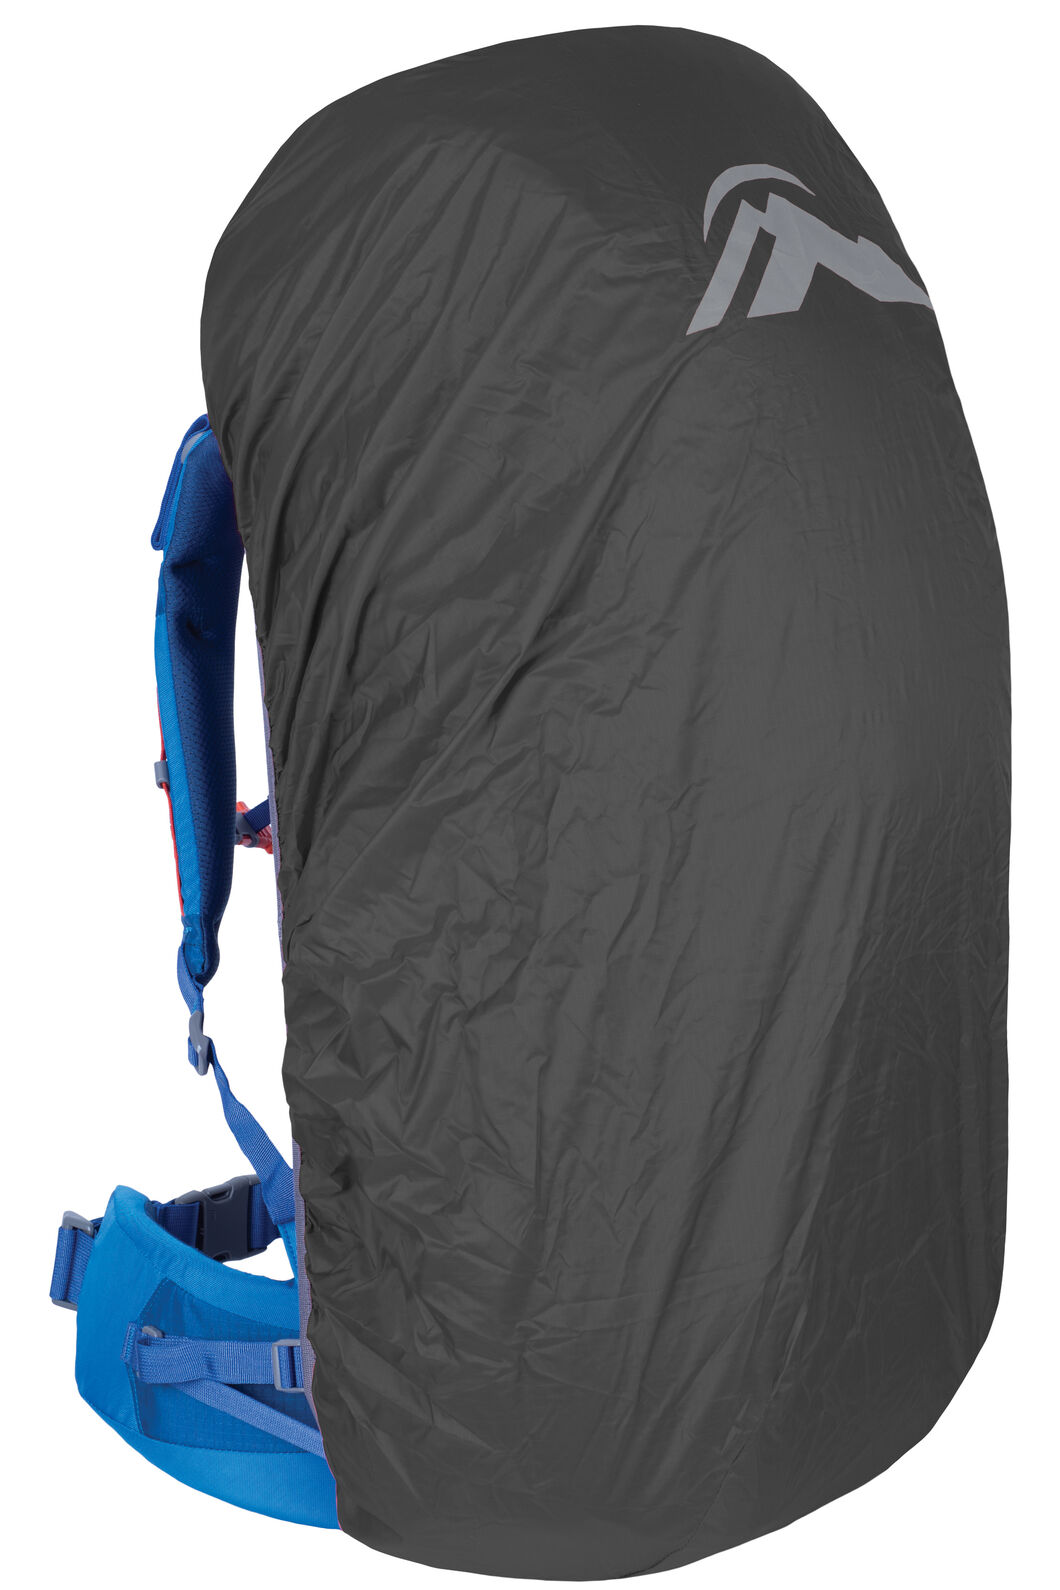 Macpac Pack Raincover Medium, Charcoal, hi-res